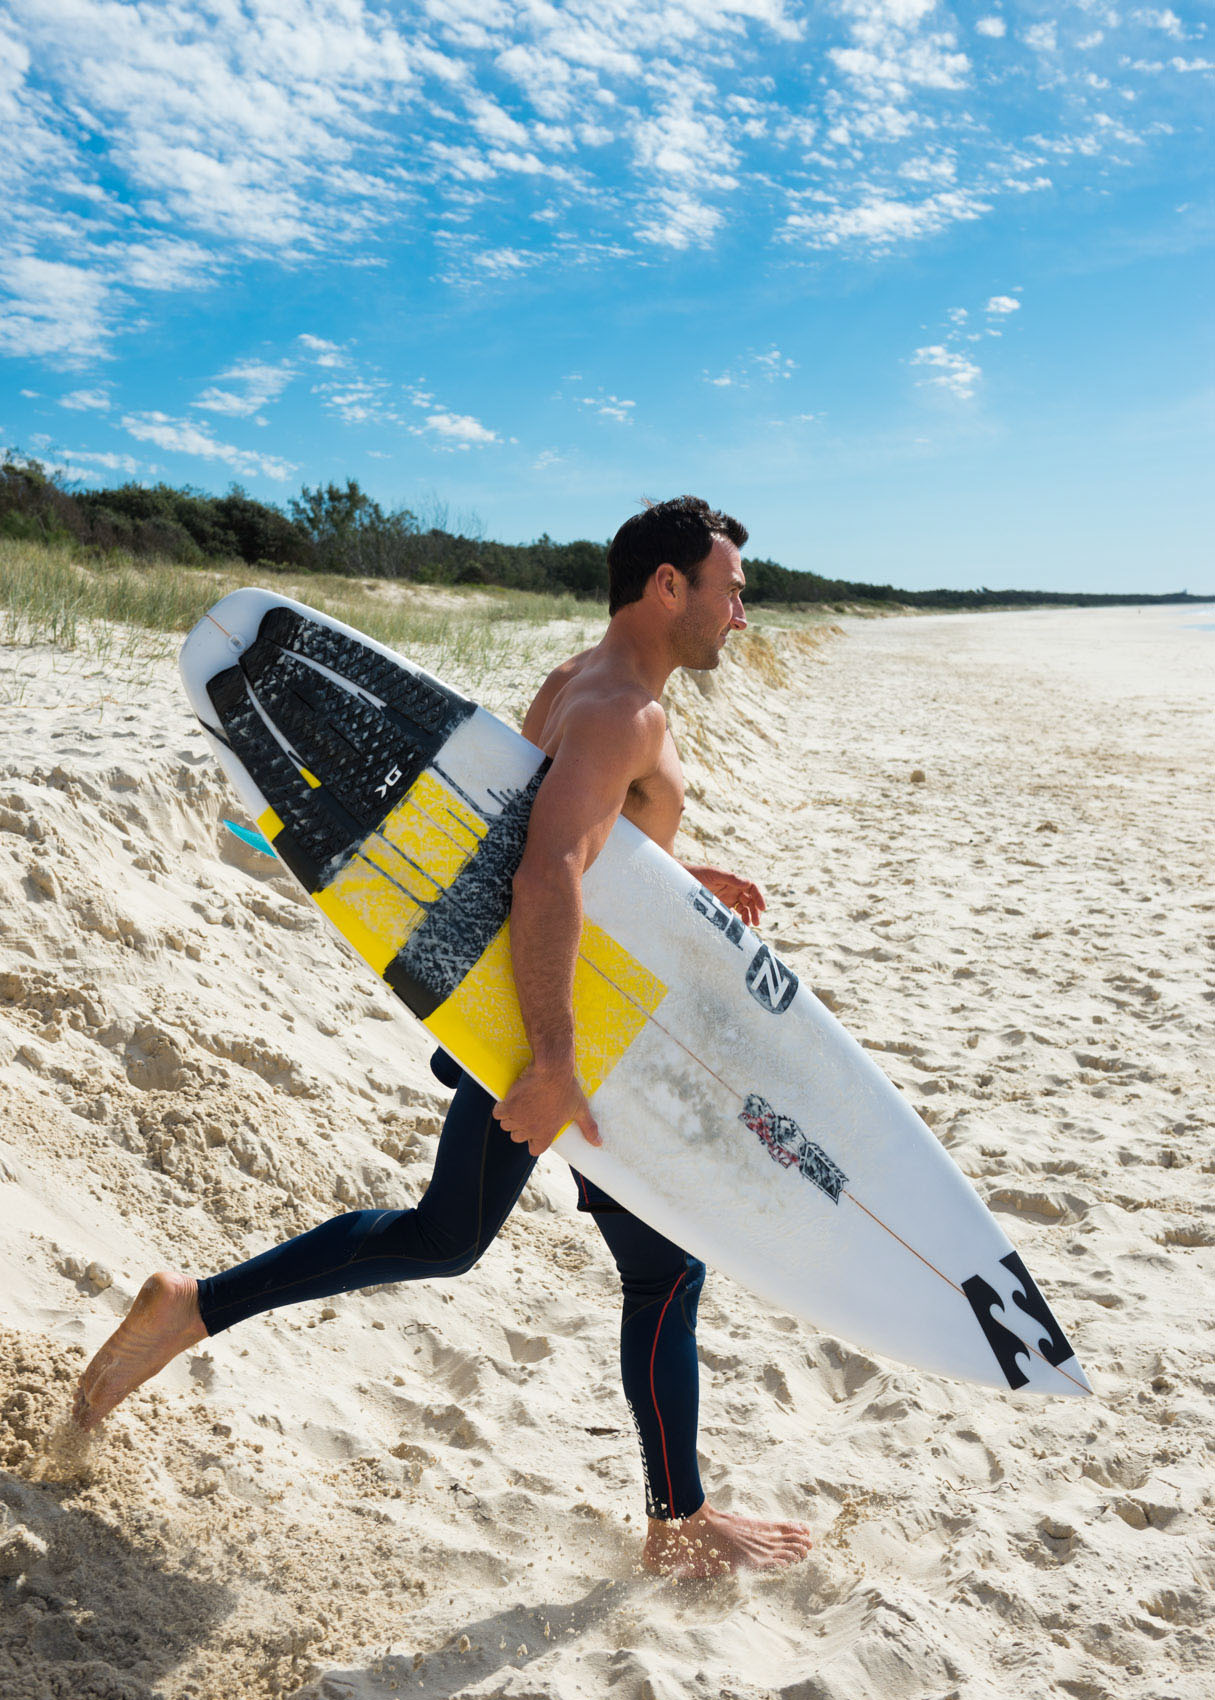 O18-190 Joel Parkinson at Cabarita beach